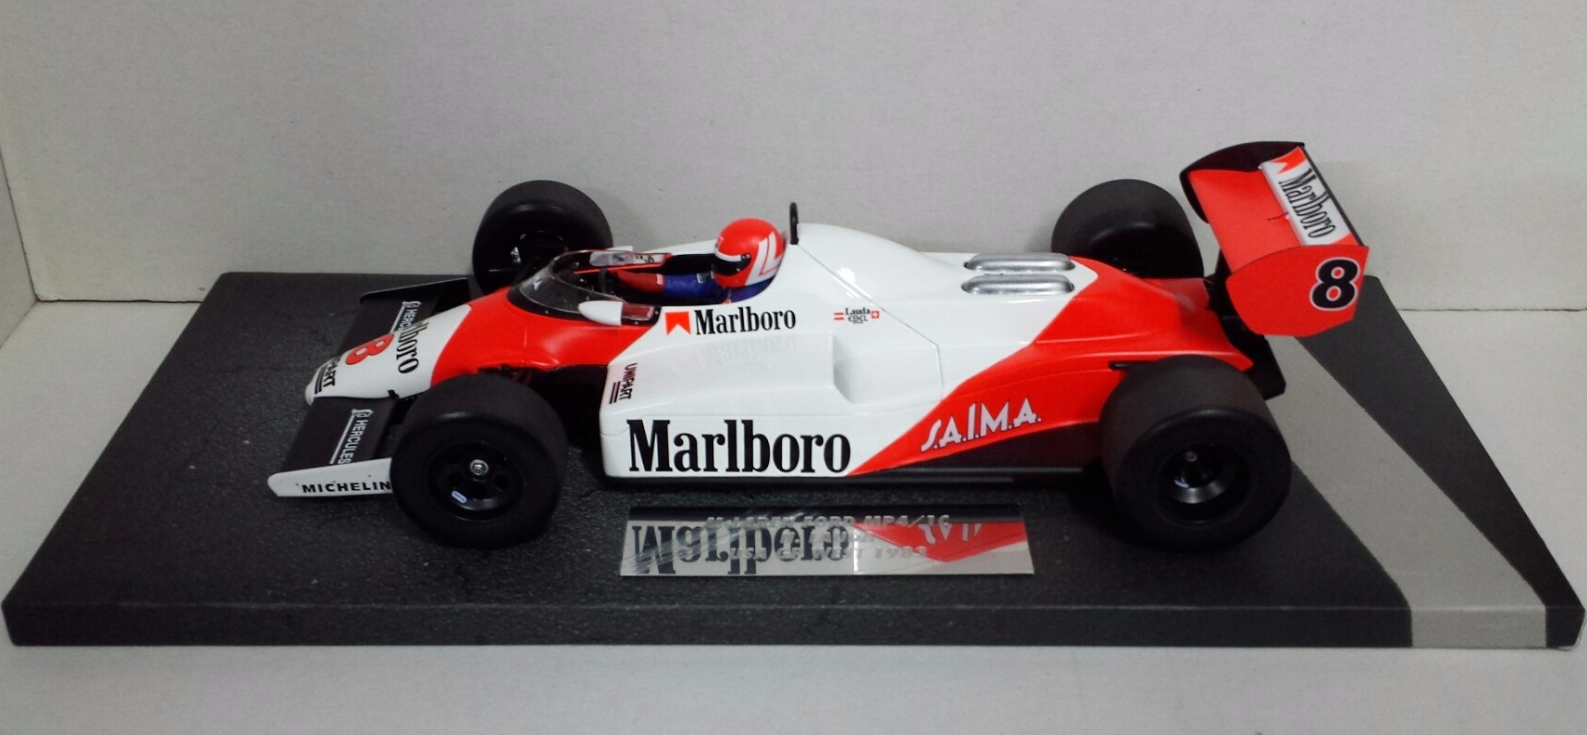 MINICHAMPS 1/18 NIKI LAUDA MCLAREN FORD MP4/1C GP USA 1983 WITH DECAL TOBACCO